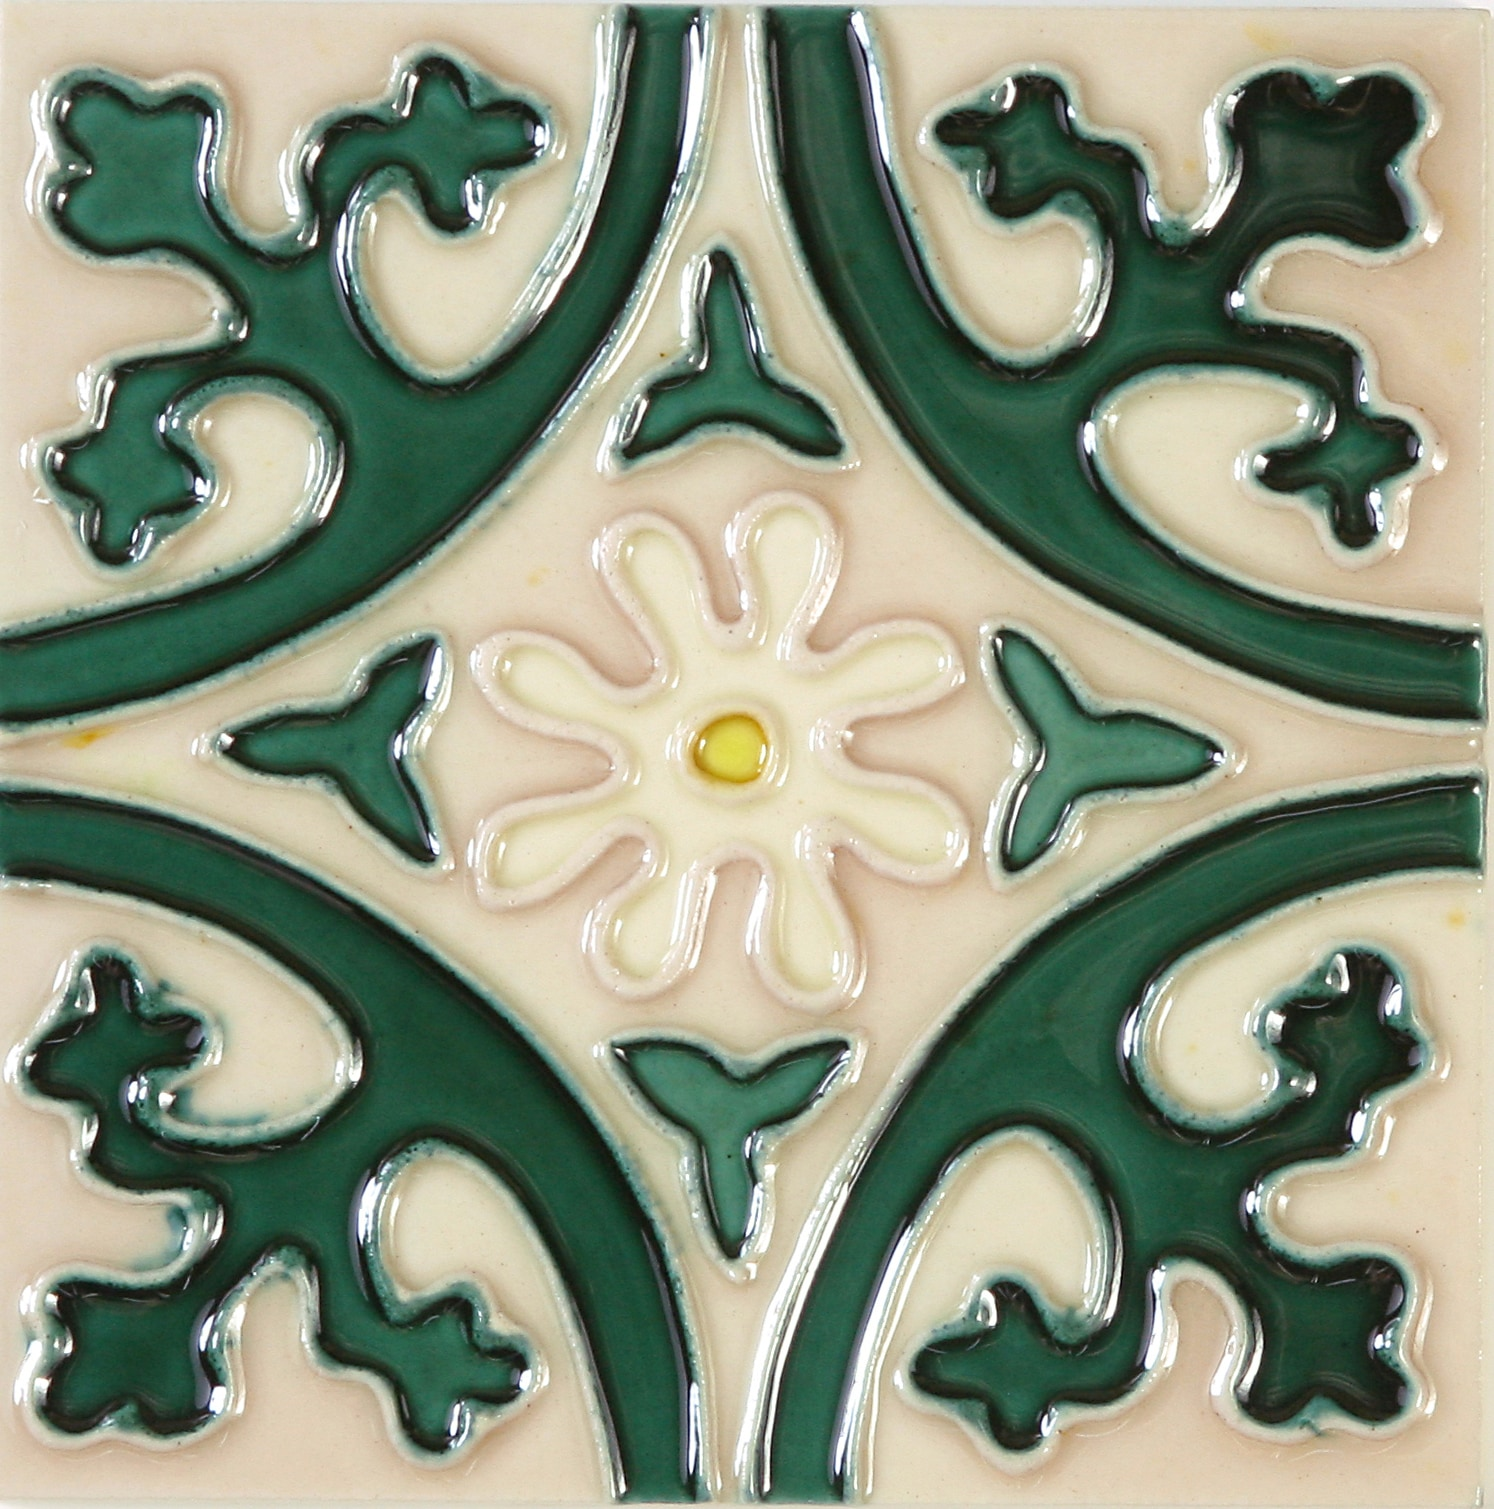 Hand-Painted Ceramic Glazed Wall Tile in Jardin Hand-Painted Ceramic Glazed Wall Tile in Jardin 0